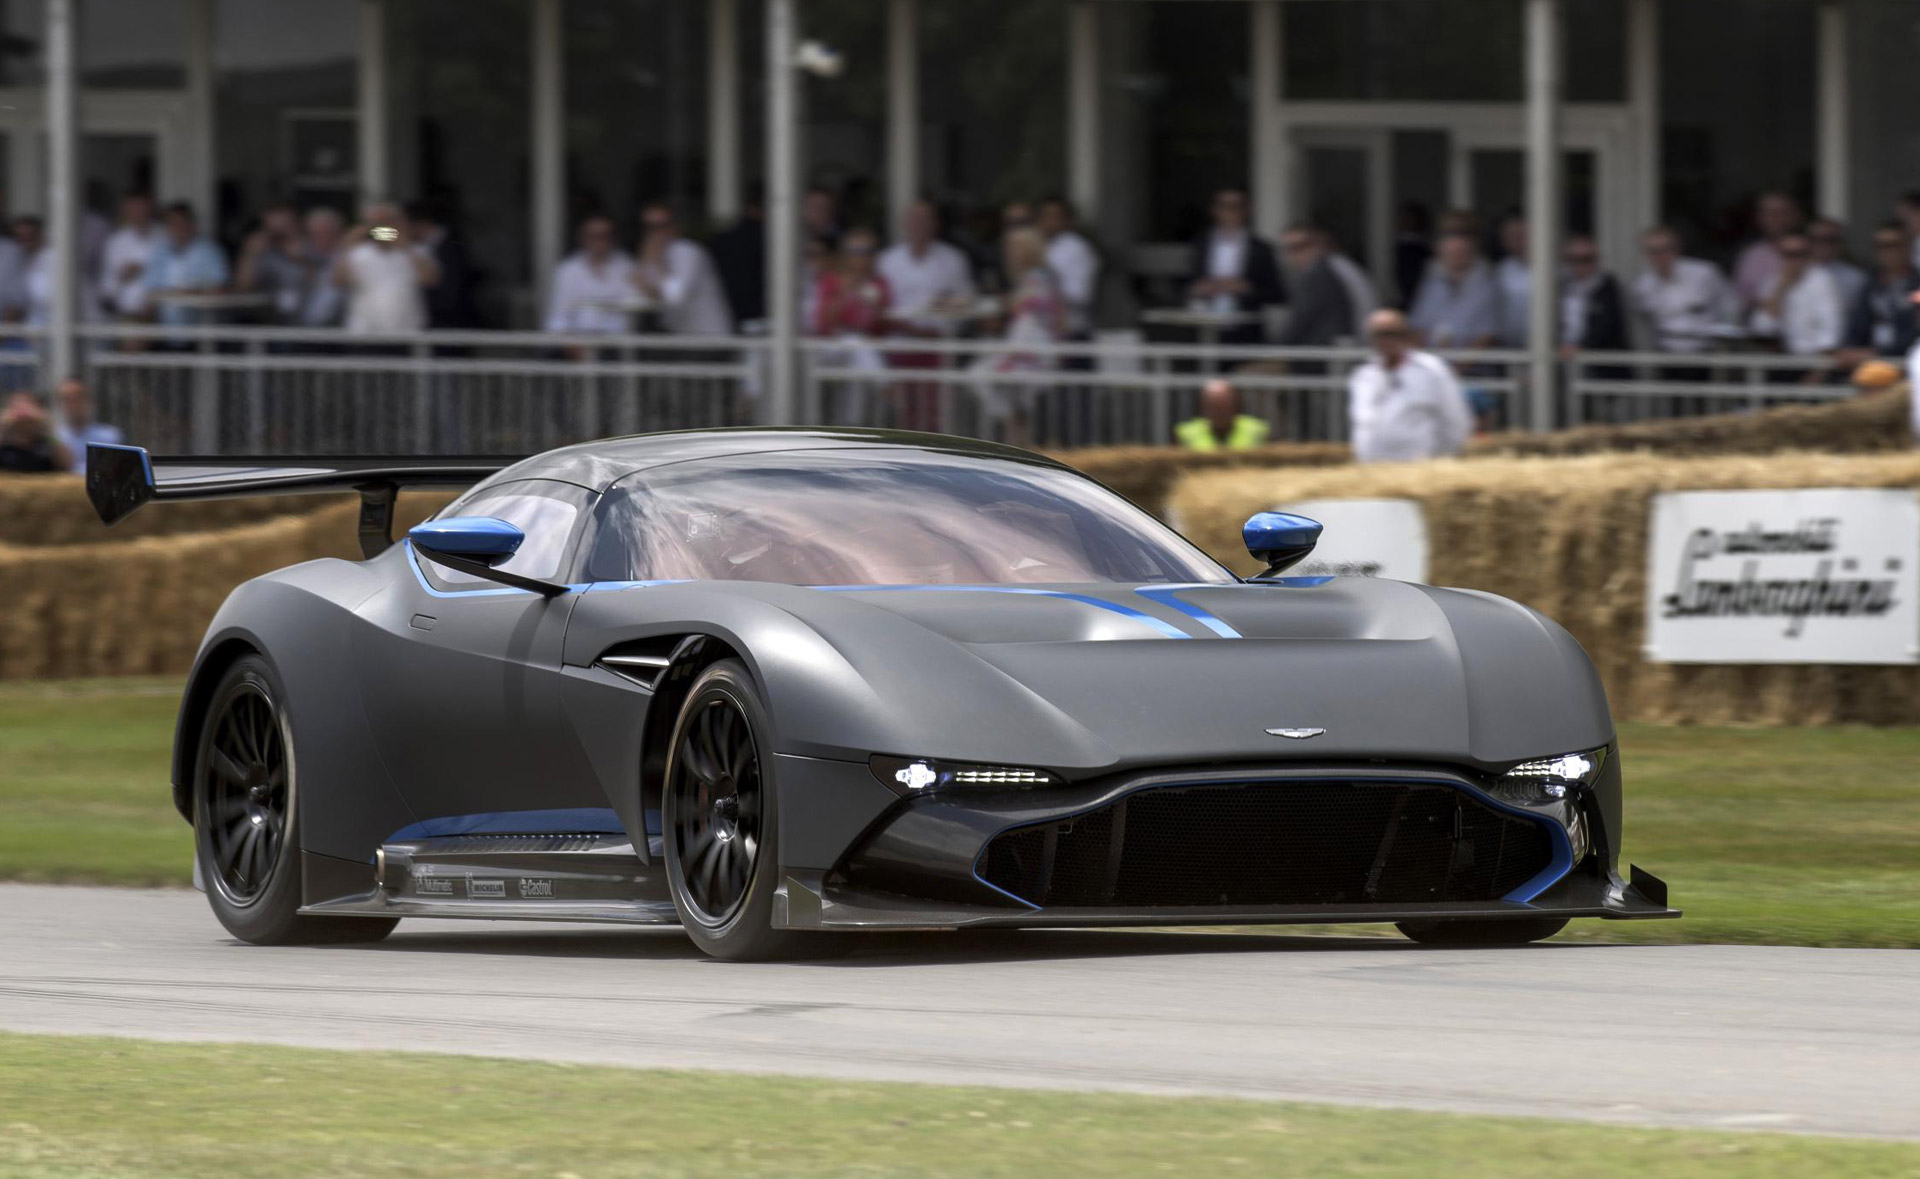 Aston Martin Vulcan Makes Dynamic Debut At 2015 Goodwood